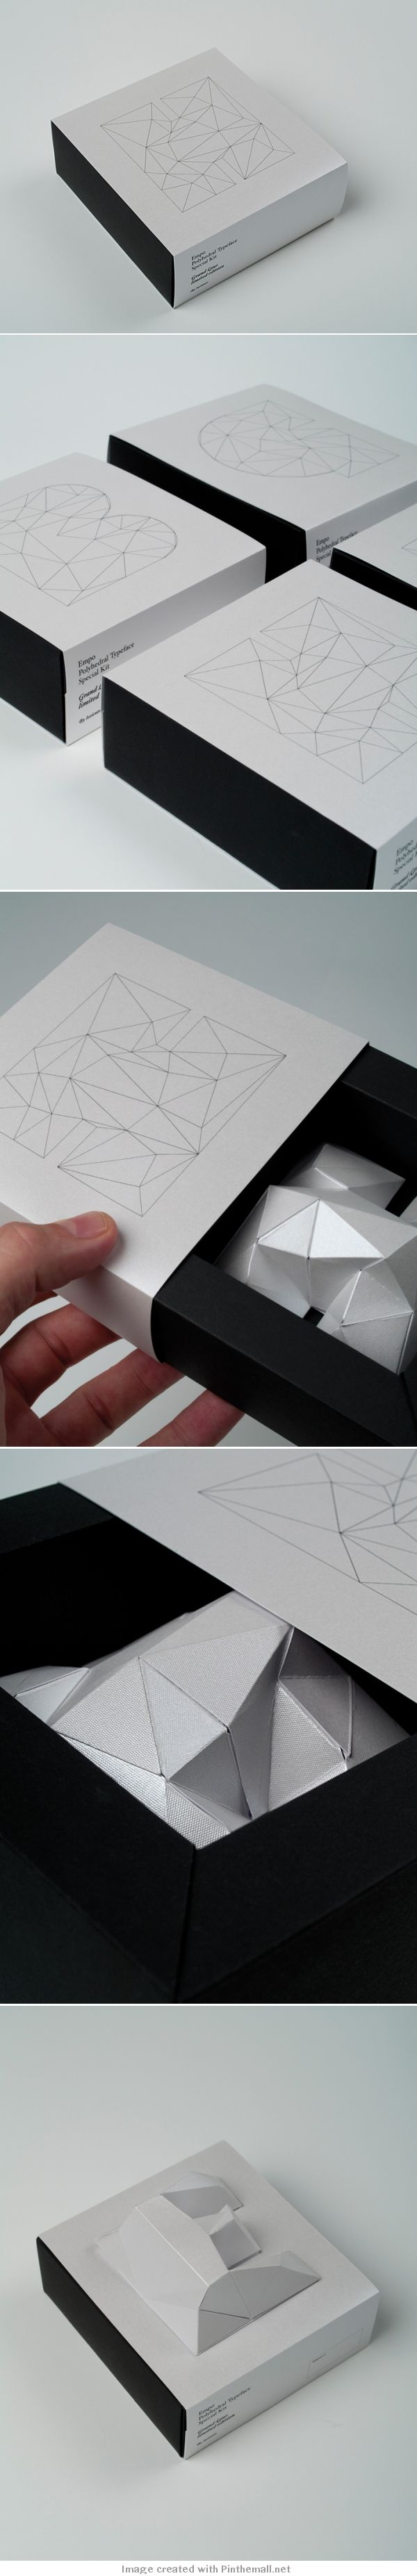 Special typo kit #packaging for EMPO students final graduation PD created via http://www.losiento.net/entry/empo-kit